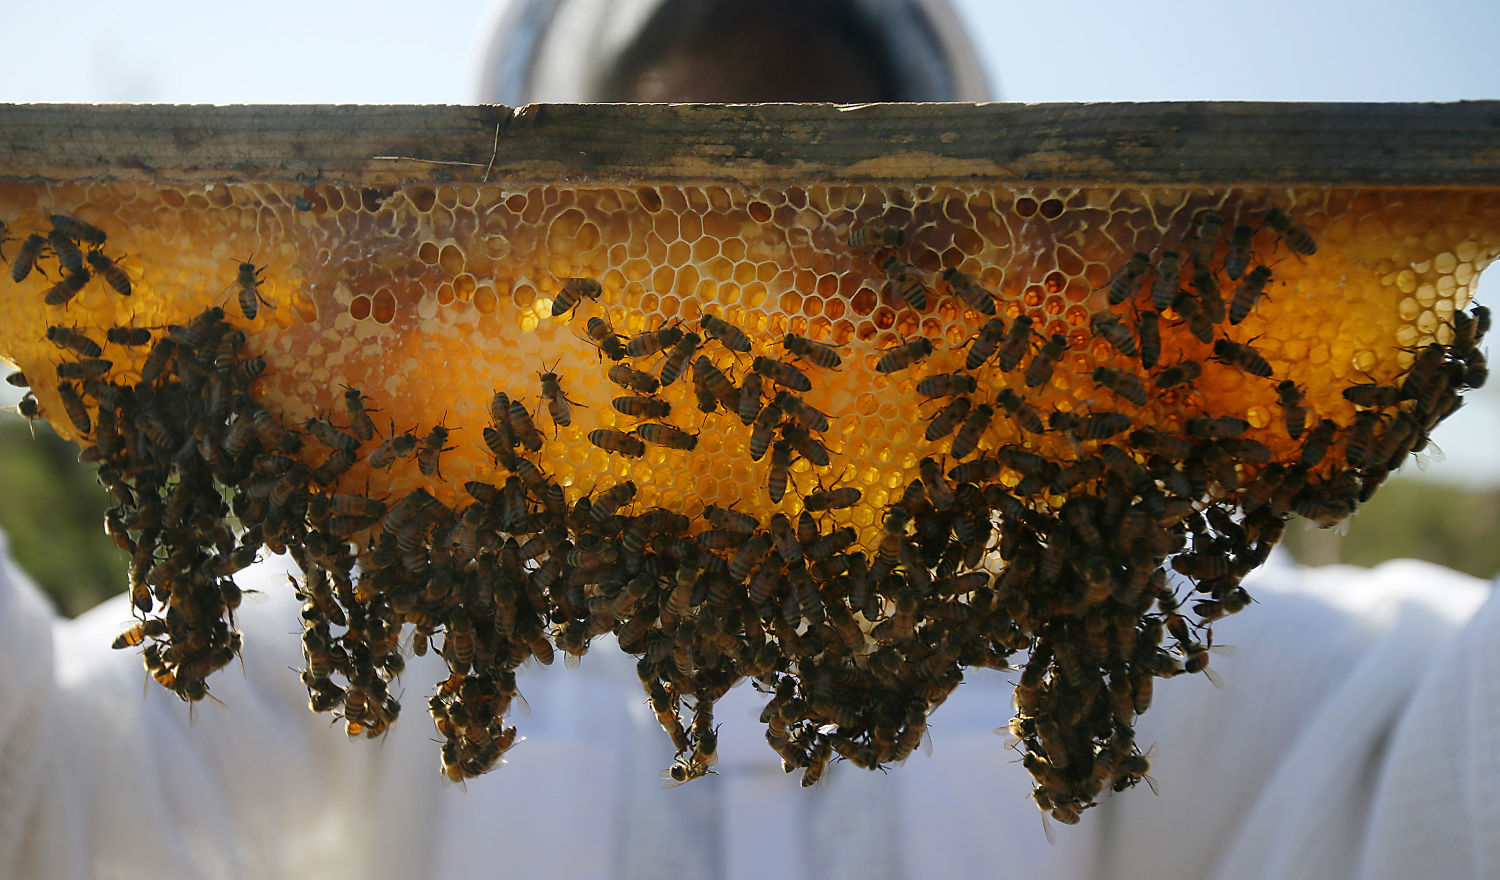 Photos: Tucson Beekeeper